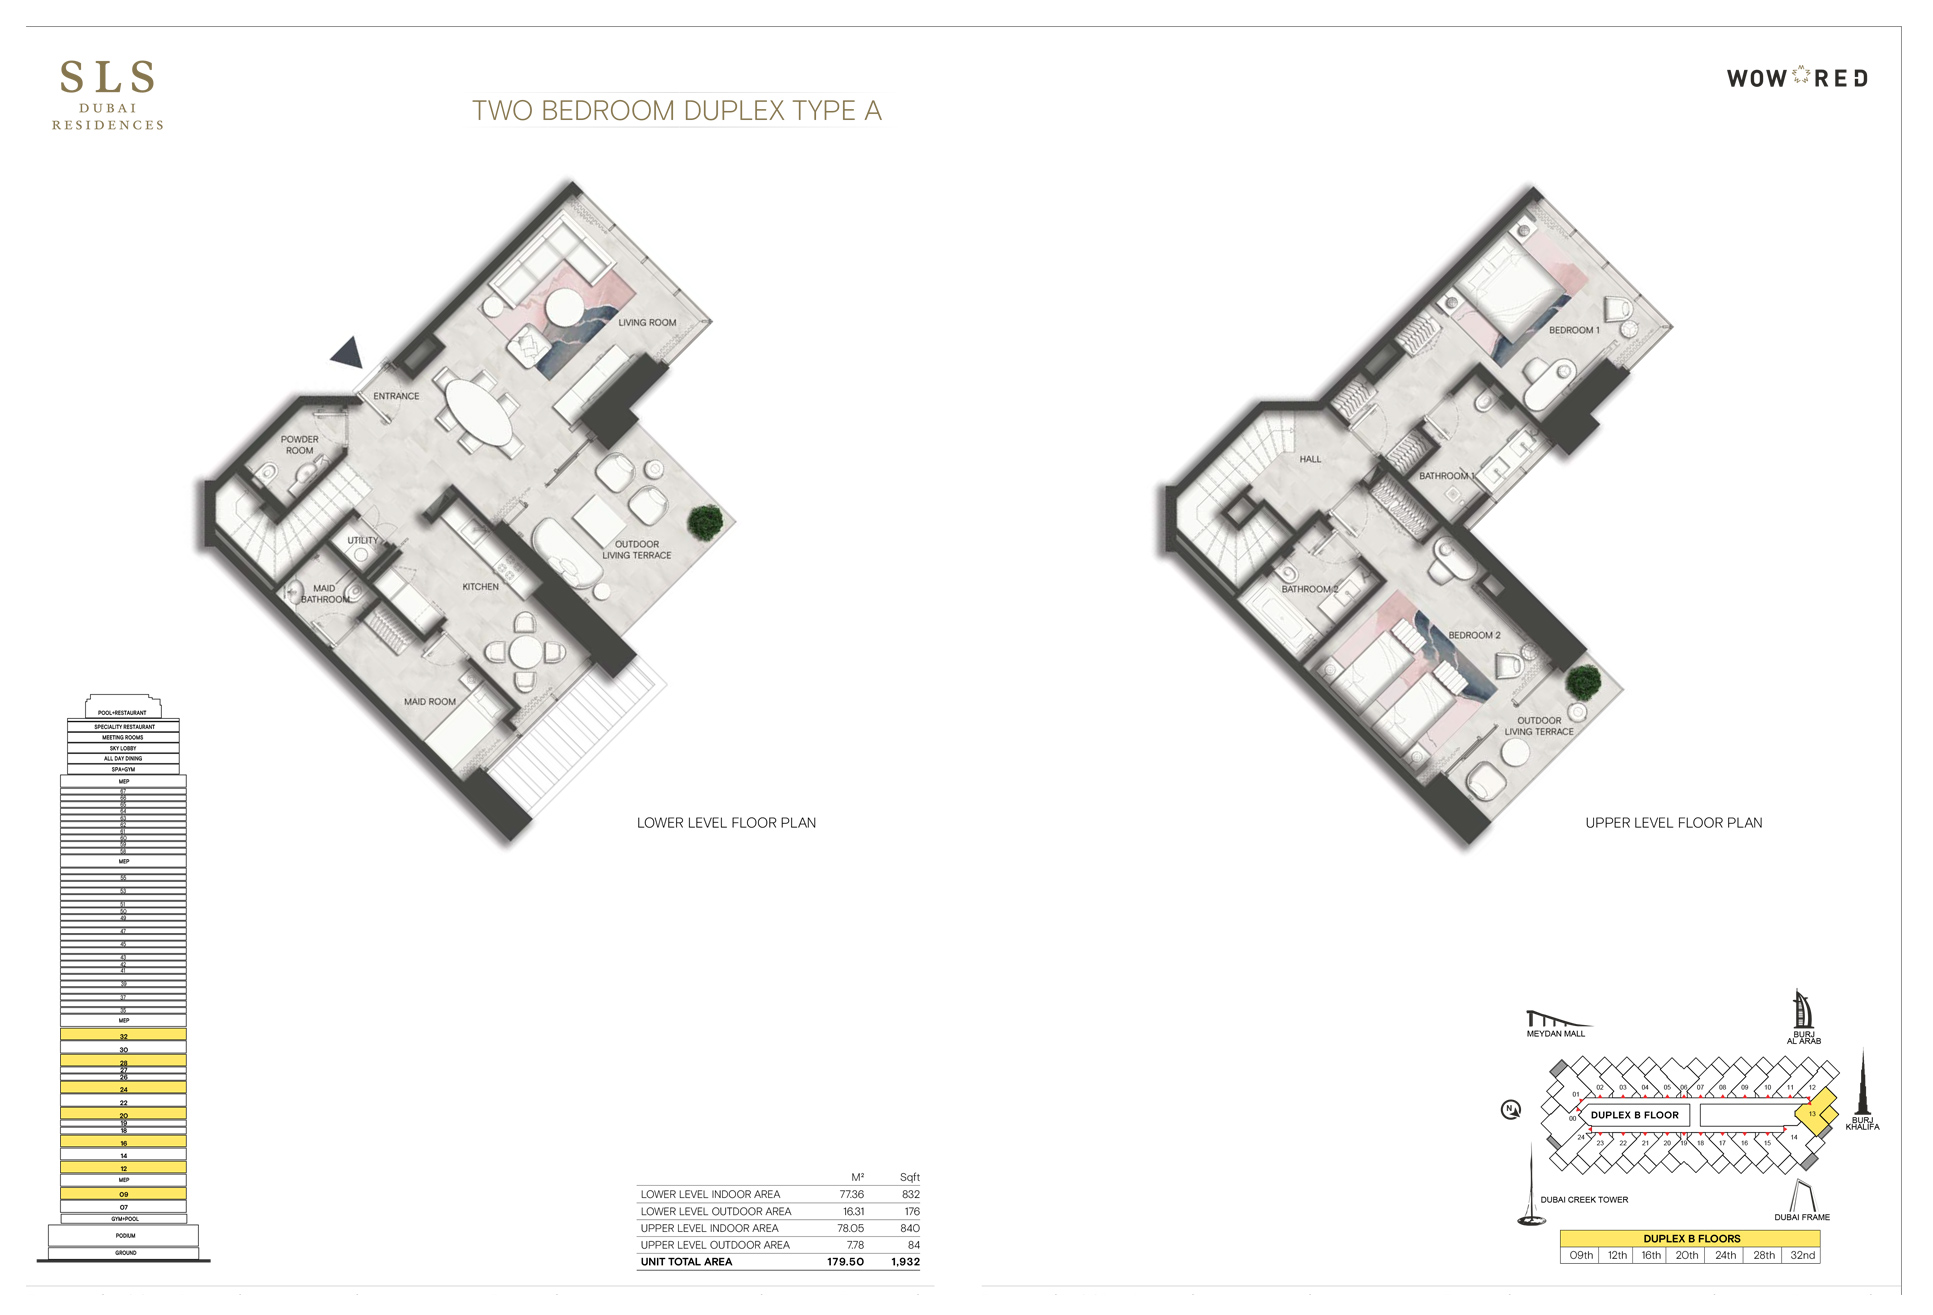 2 Bedroom Duplex Type A Size 1932 sq.ft